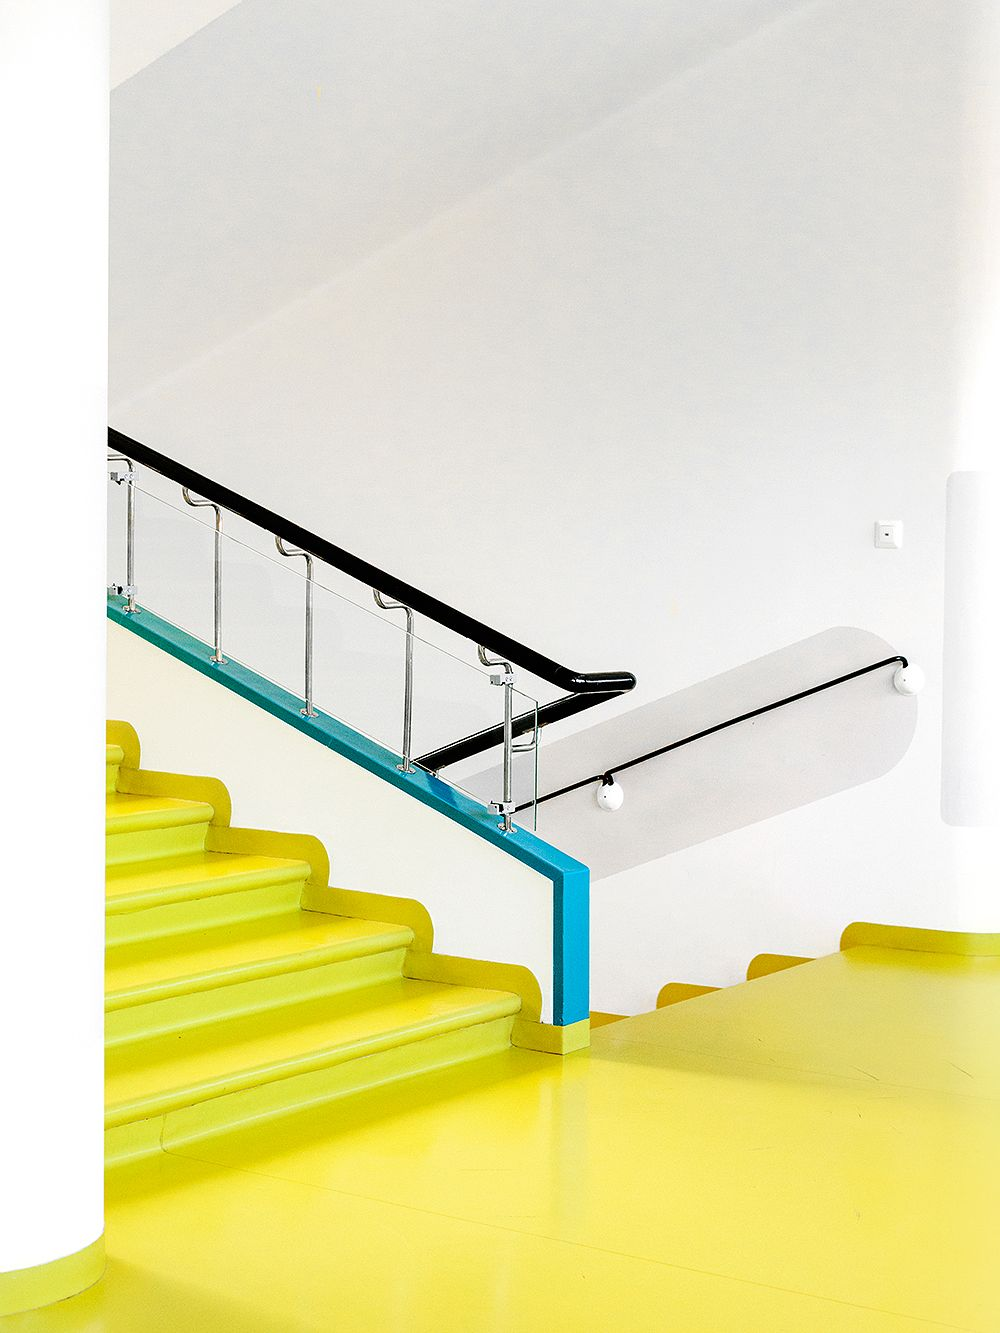 The yellow staircase of the Paimio Sanatorium